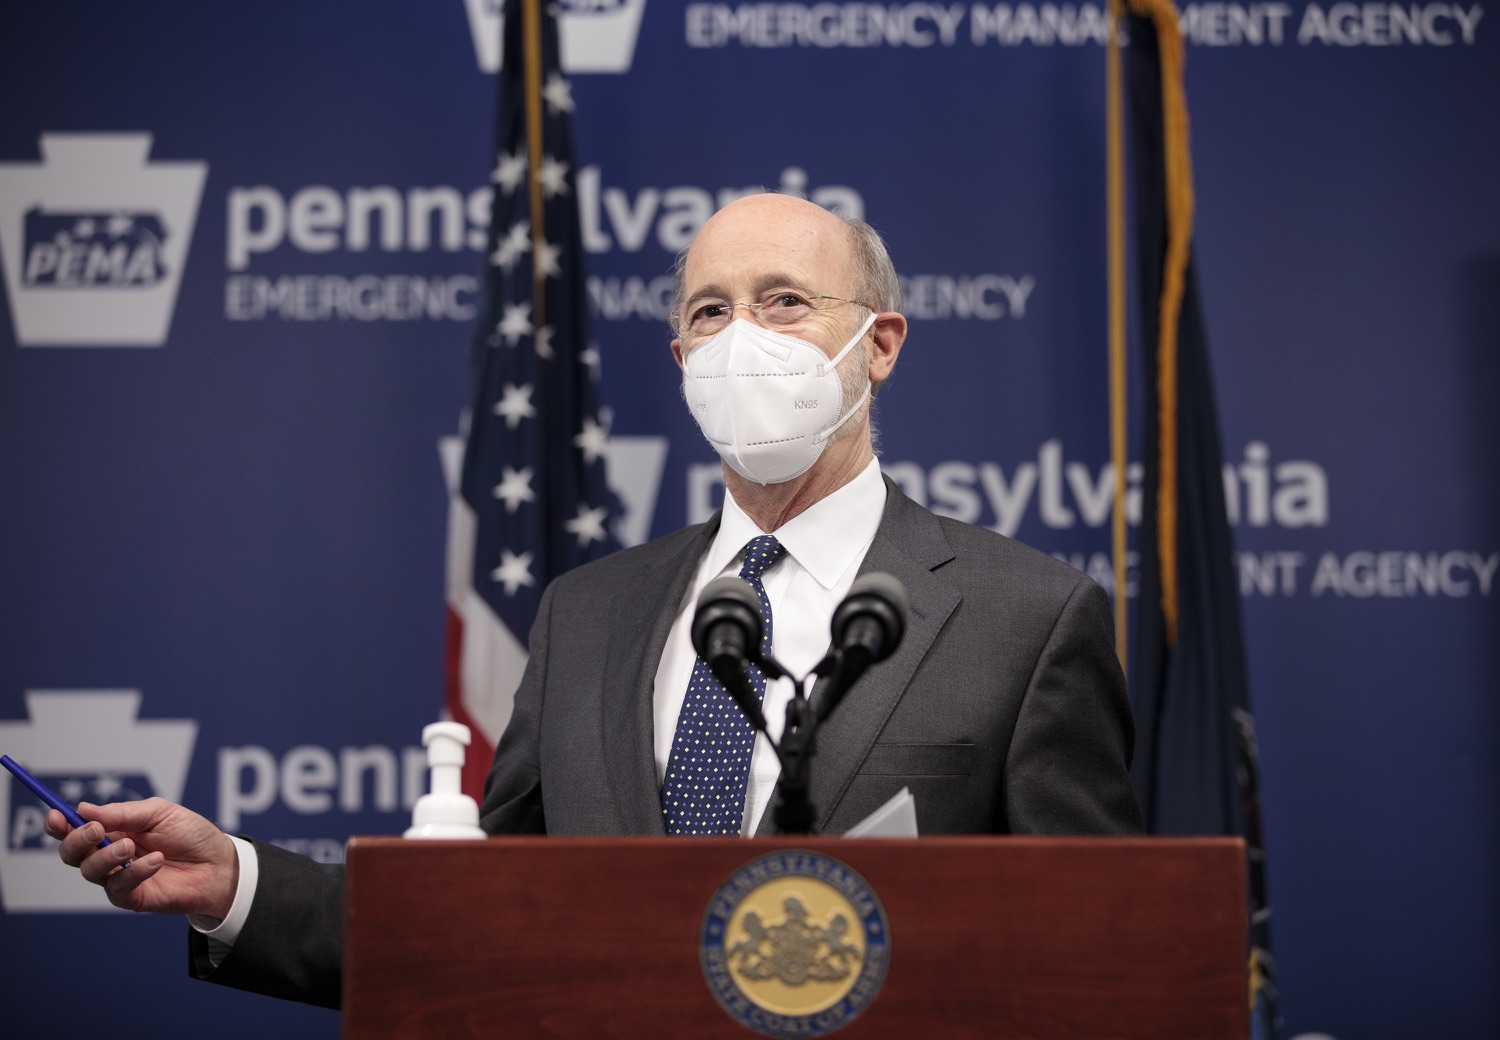 """<a href=""""https://filesource.wostreaming.net/commonwealthofpa/photo/18548_gov_vaccine_dz_01.jpg"""" target=""""_blank"""">⇣Download Photo<br></a>Pennsylvania Governor Tom Wolf speaking at the press conference.  Governor Tom Wolf today marked a milestone in the implementation of the states COVID-19 vaccination plan with the announcement that more than 600 skilled nursing facilities have received first and second doses of the vaccine, and in total more than 315,000 doses of vaccine administered among all long-term care facilities being vaccinated by CVS and Walgreens.  Harrisburg, PA - February 23, 2021"""